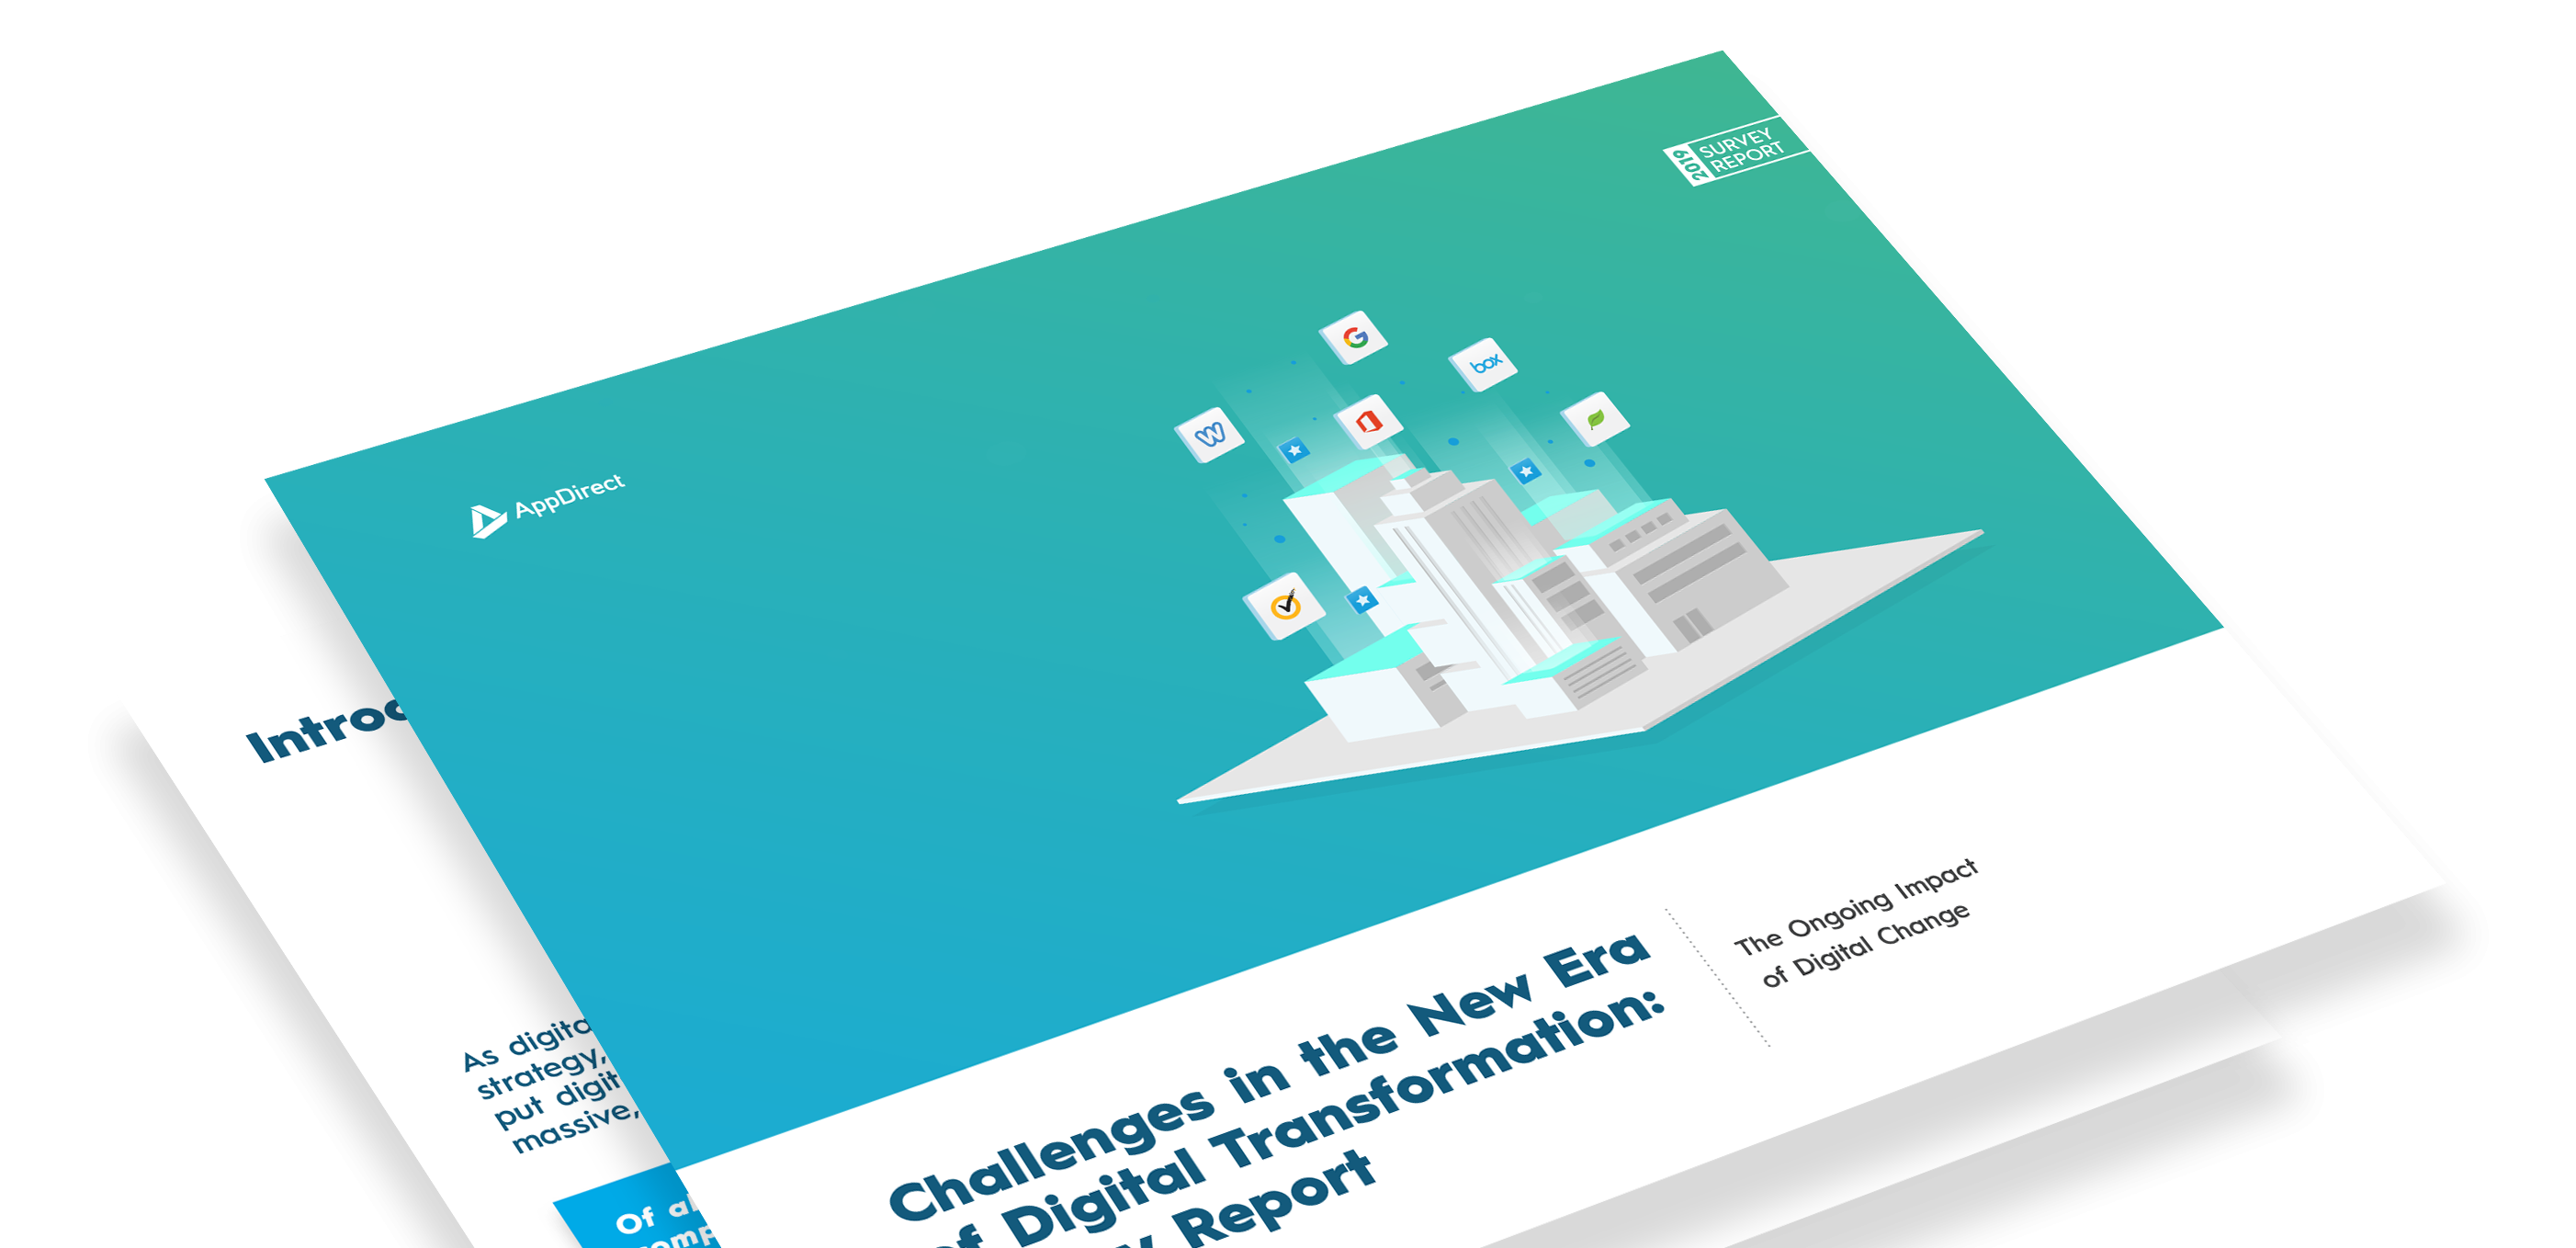 Challenges in the Era of Digital Transformation: Survey Report